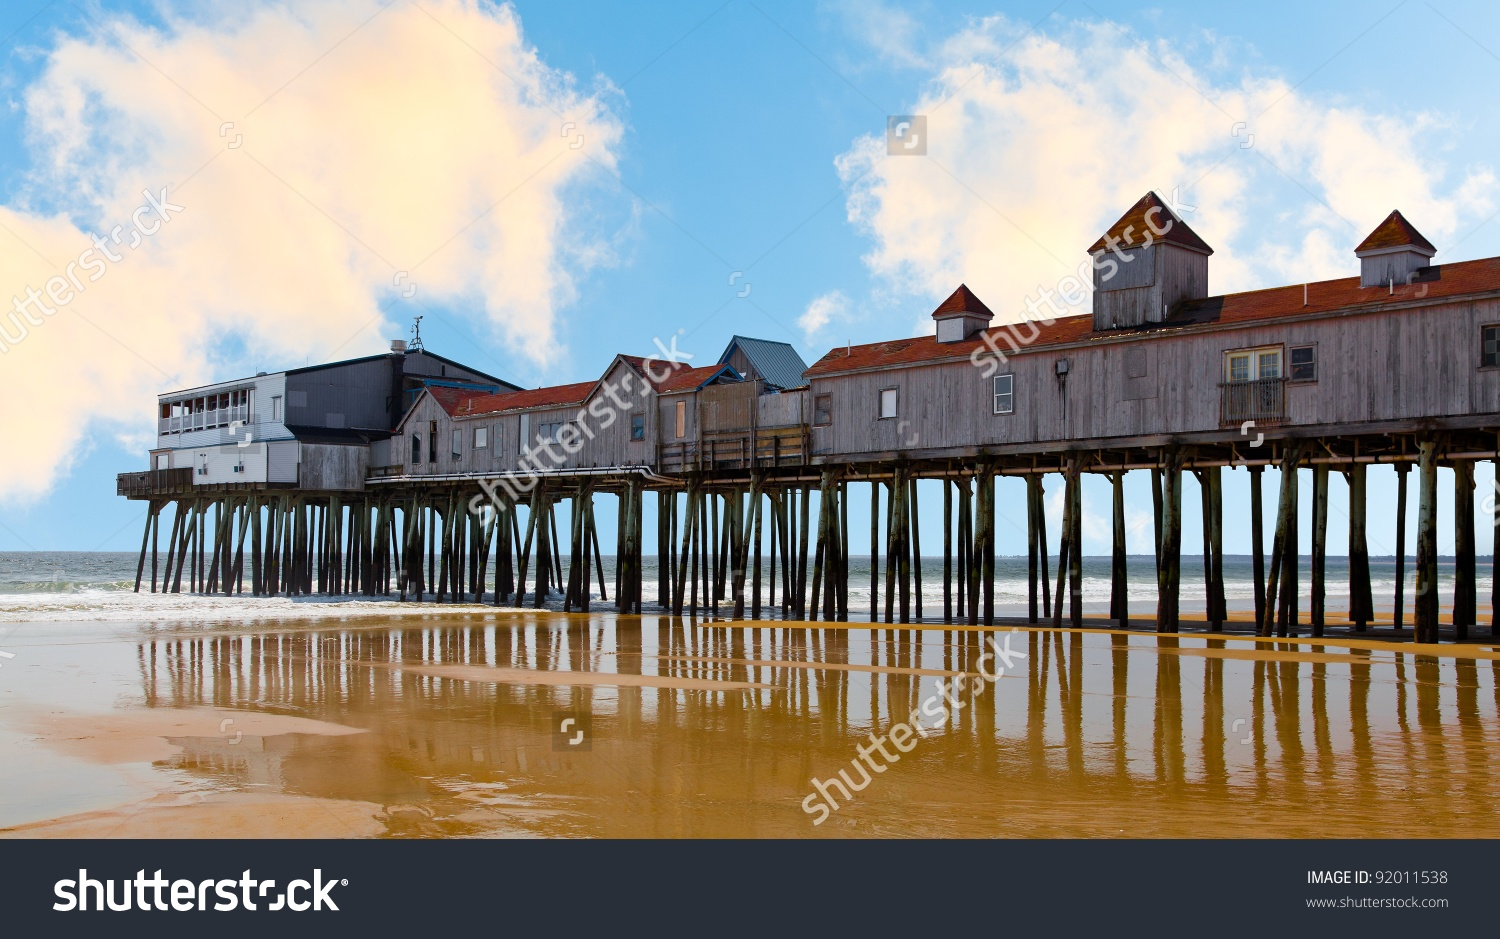 Historic Wooden Pier At Old Orchard Beach, Maine Stock Photo.